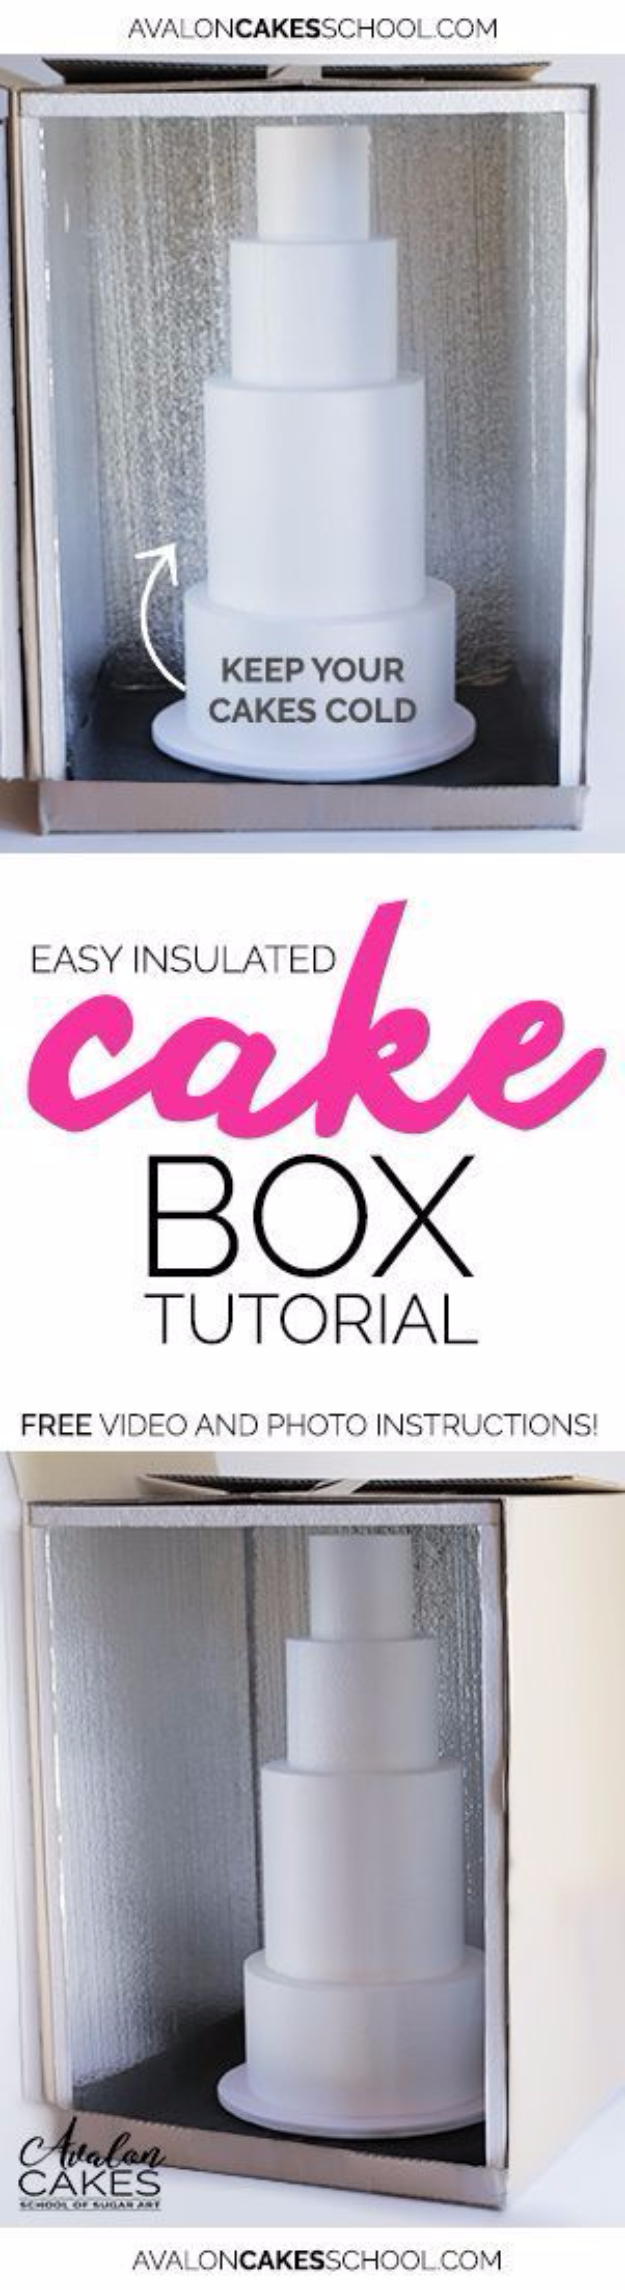 Best Baking Hacks - Easy Insulated Cake Box - DIY Cooking Tips and Tricks for Baking Recipes - Quick Ways to Bake Cake, Cupcakes, Desserts and Cookies - Kitchen Lifehacks for Bakers